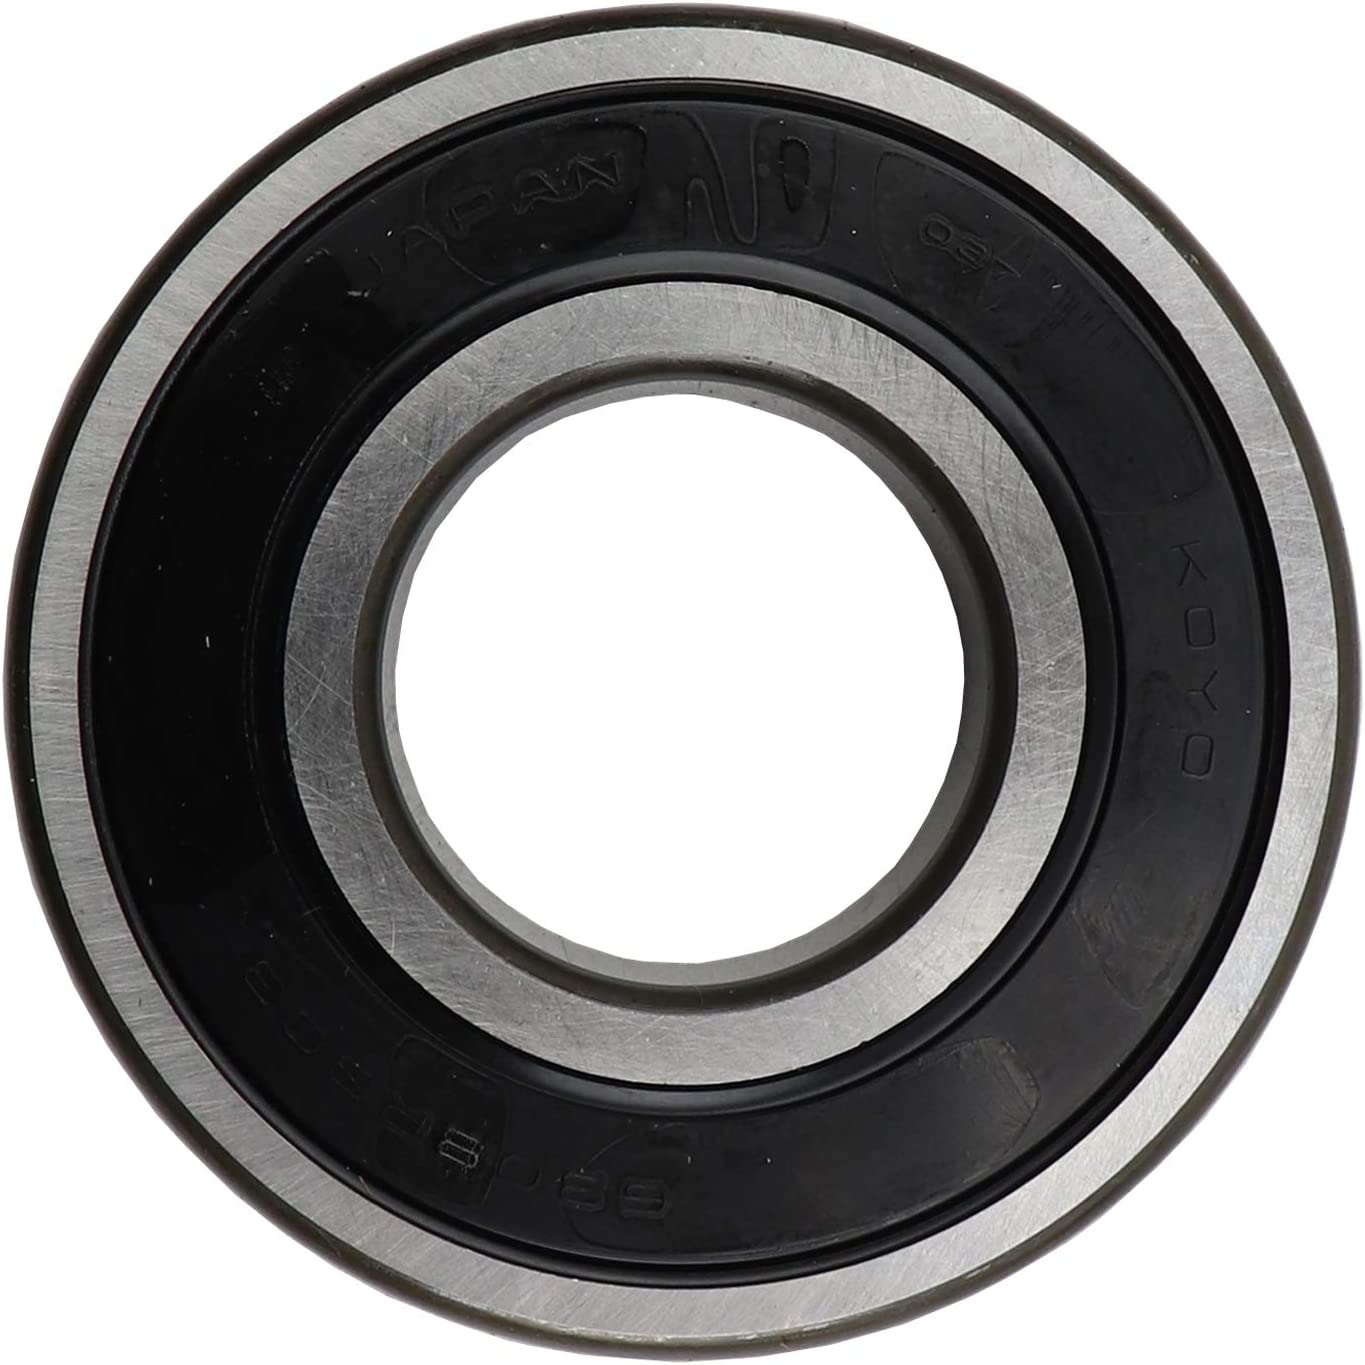 Beck Arnley 051-3350 Industry No. New color 1 Bearing